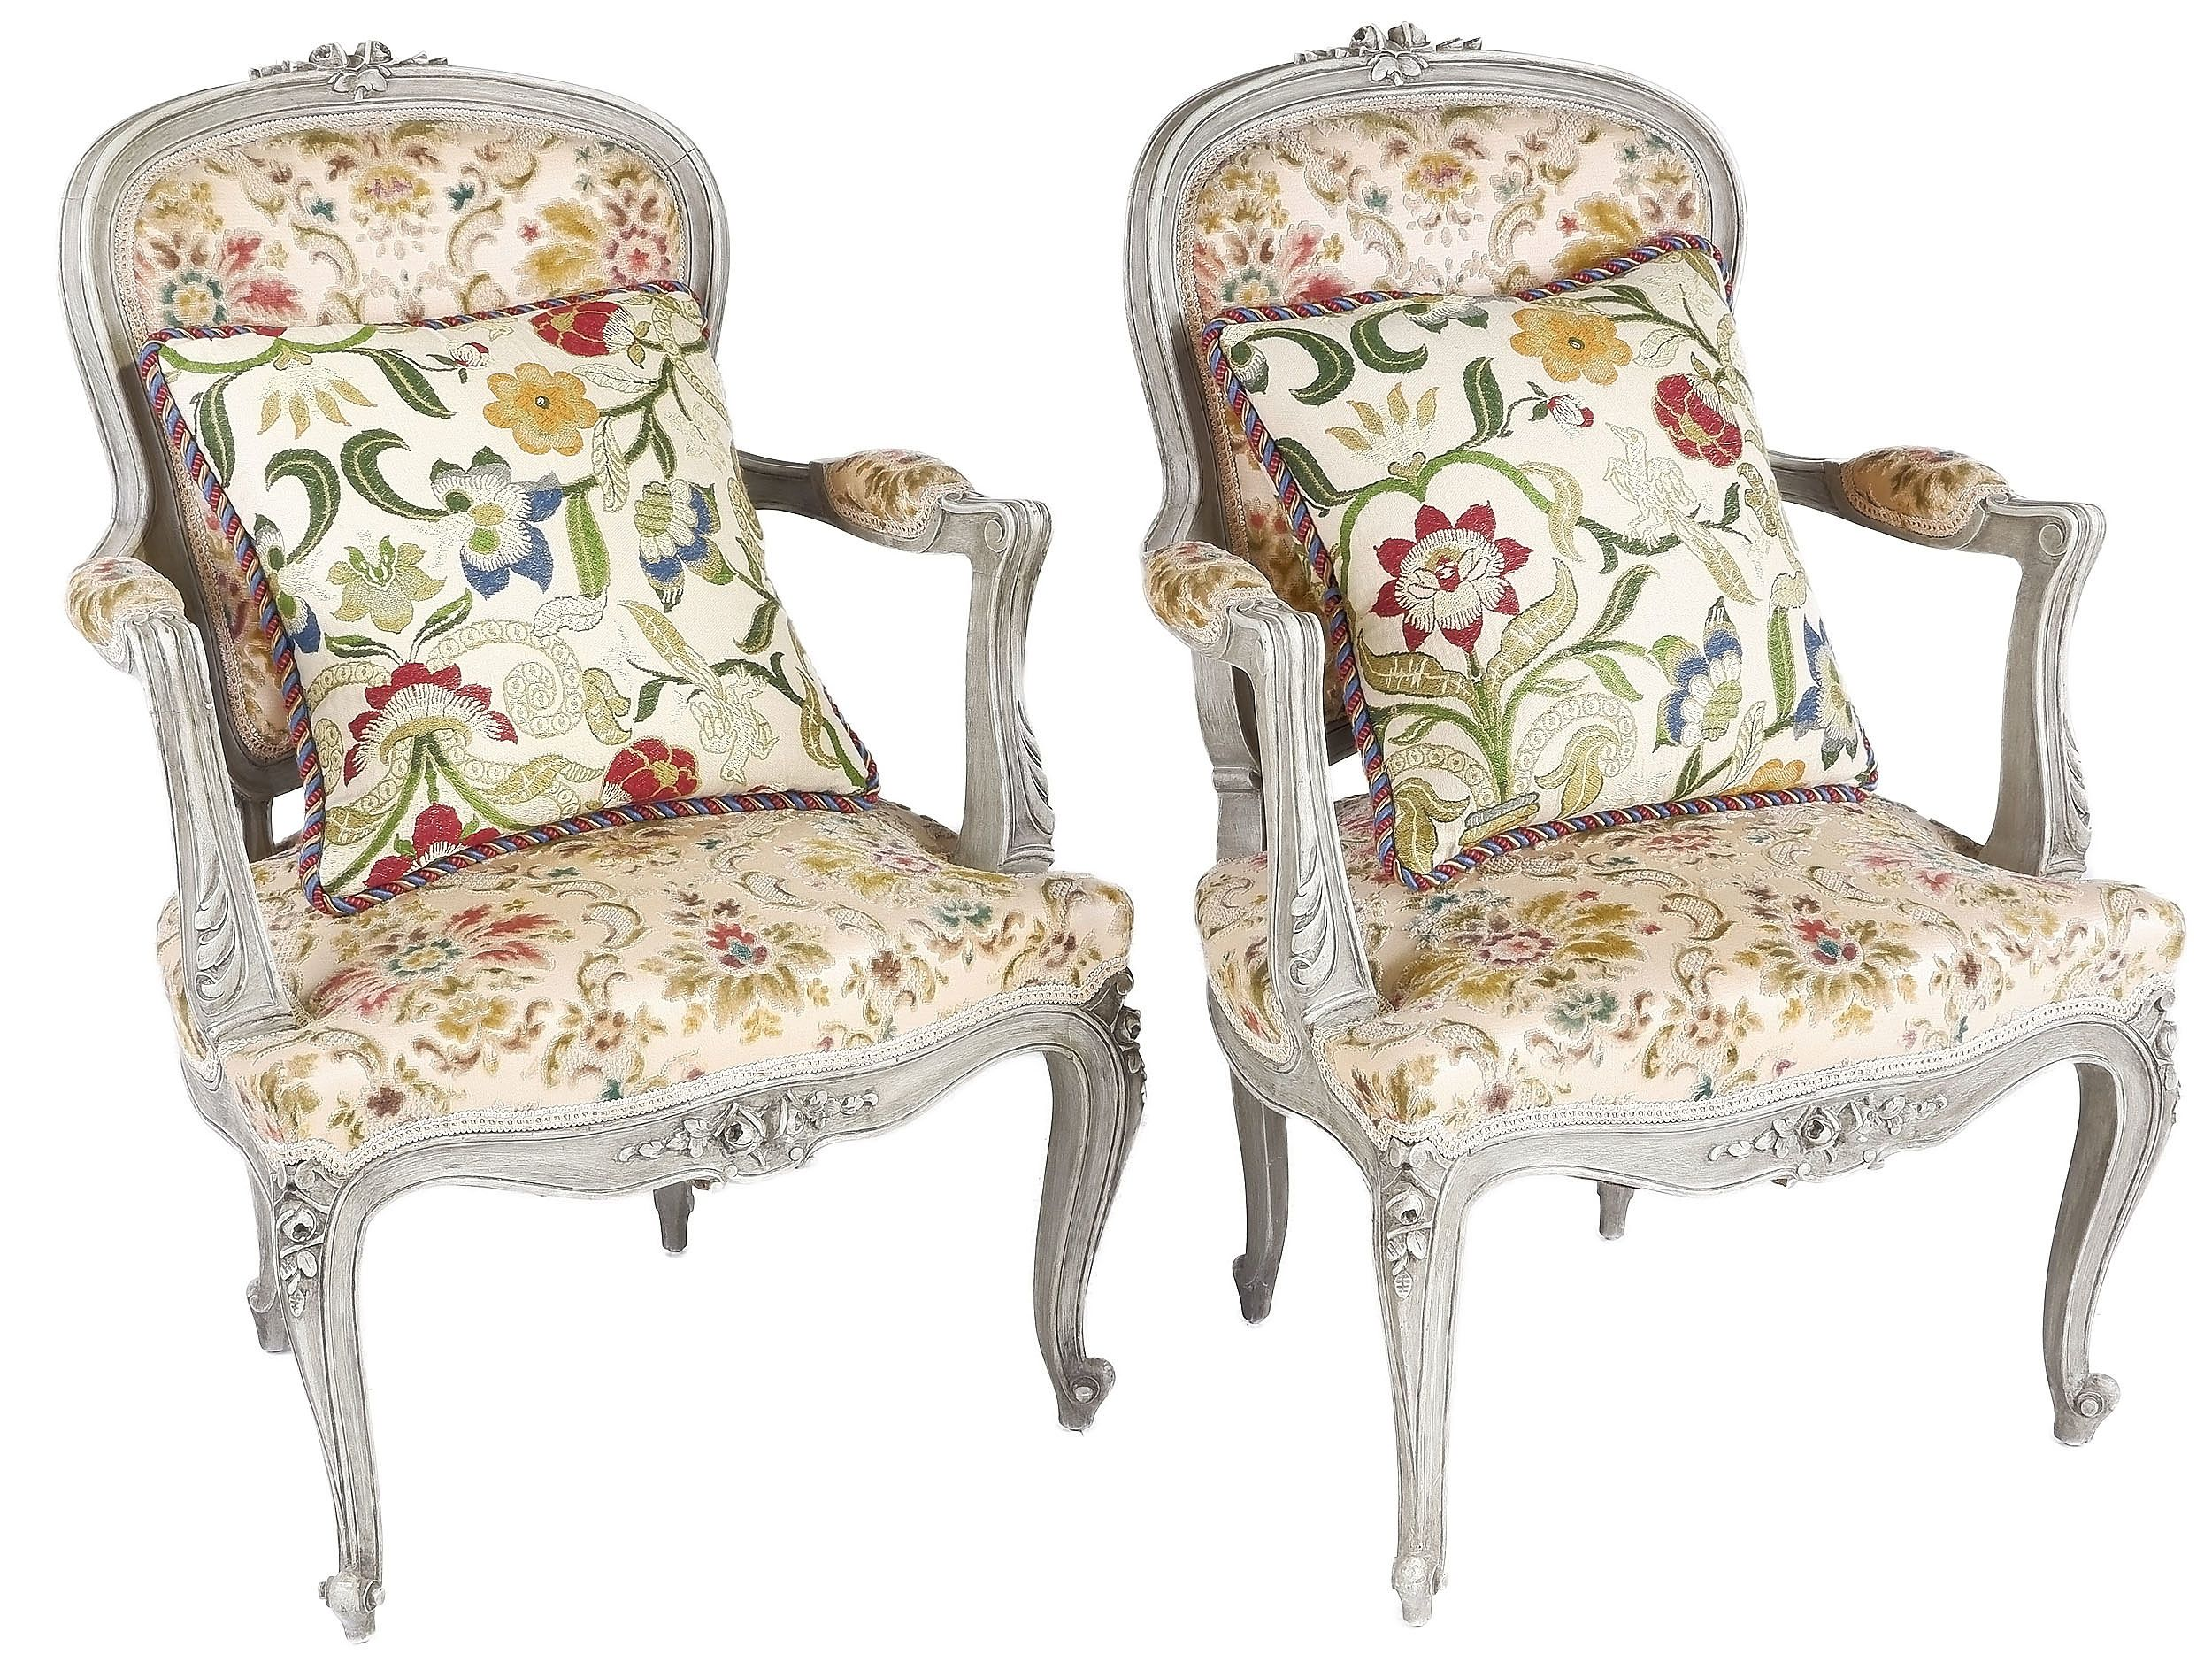 'Pair Louis Style Lime Painted Armchairs with Cut Velvet Upholstery'